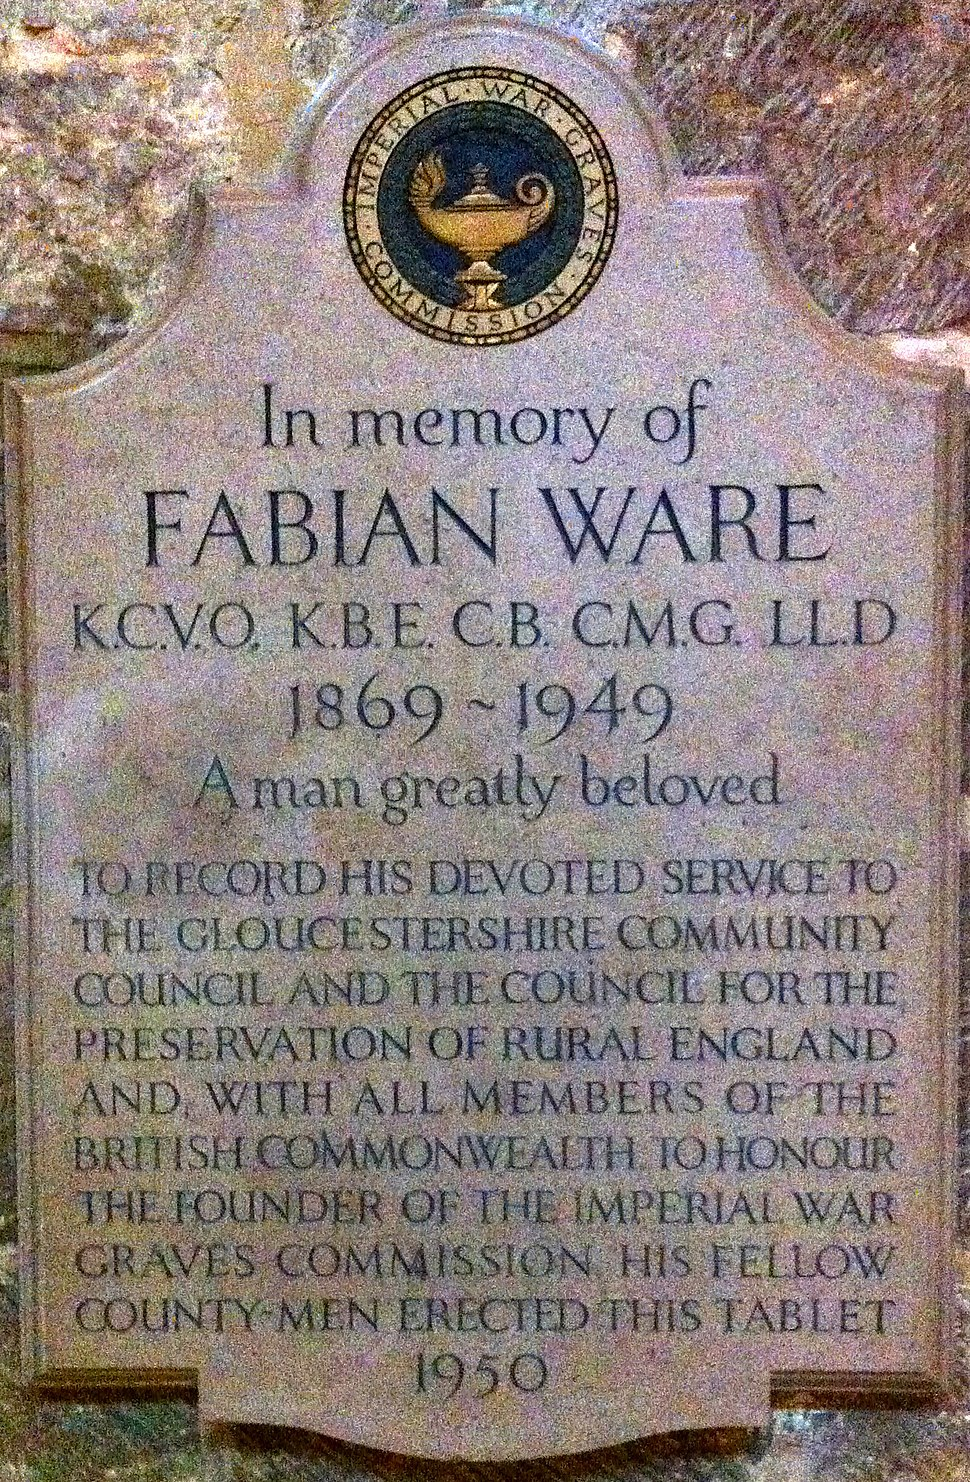 Memorial to Fabian Ware in Gloucester Cathedral